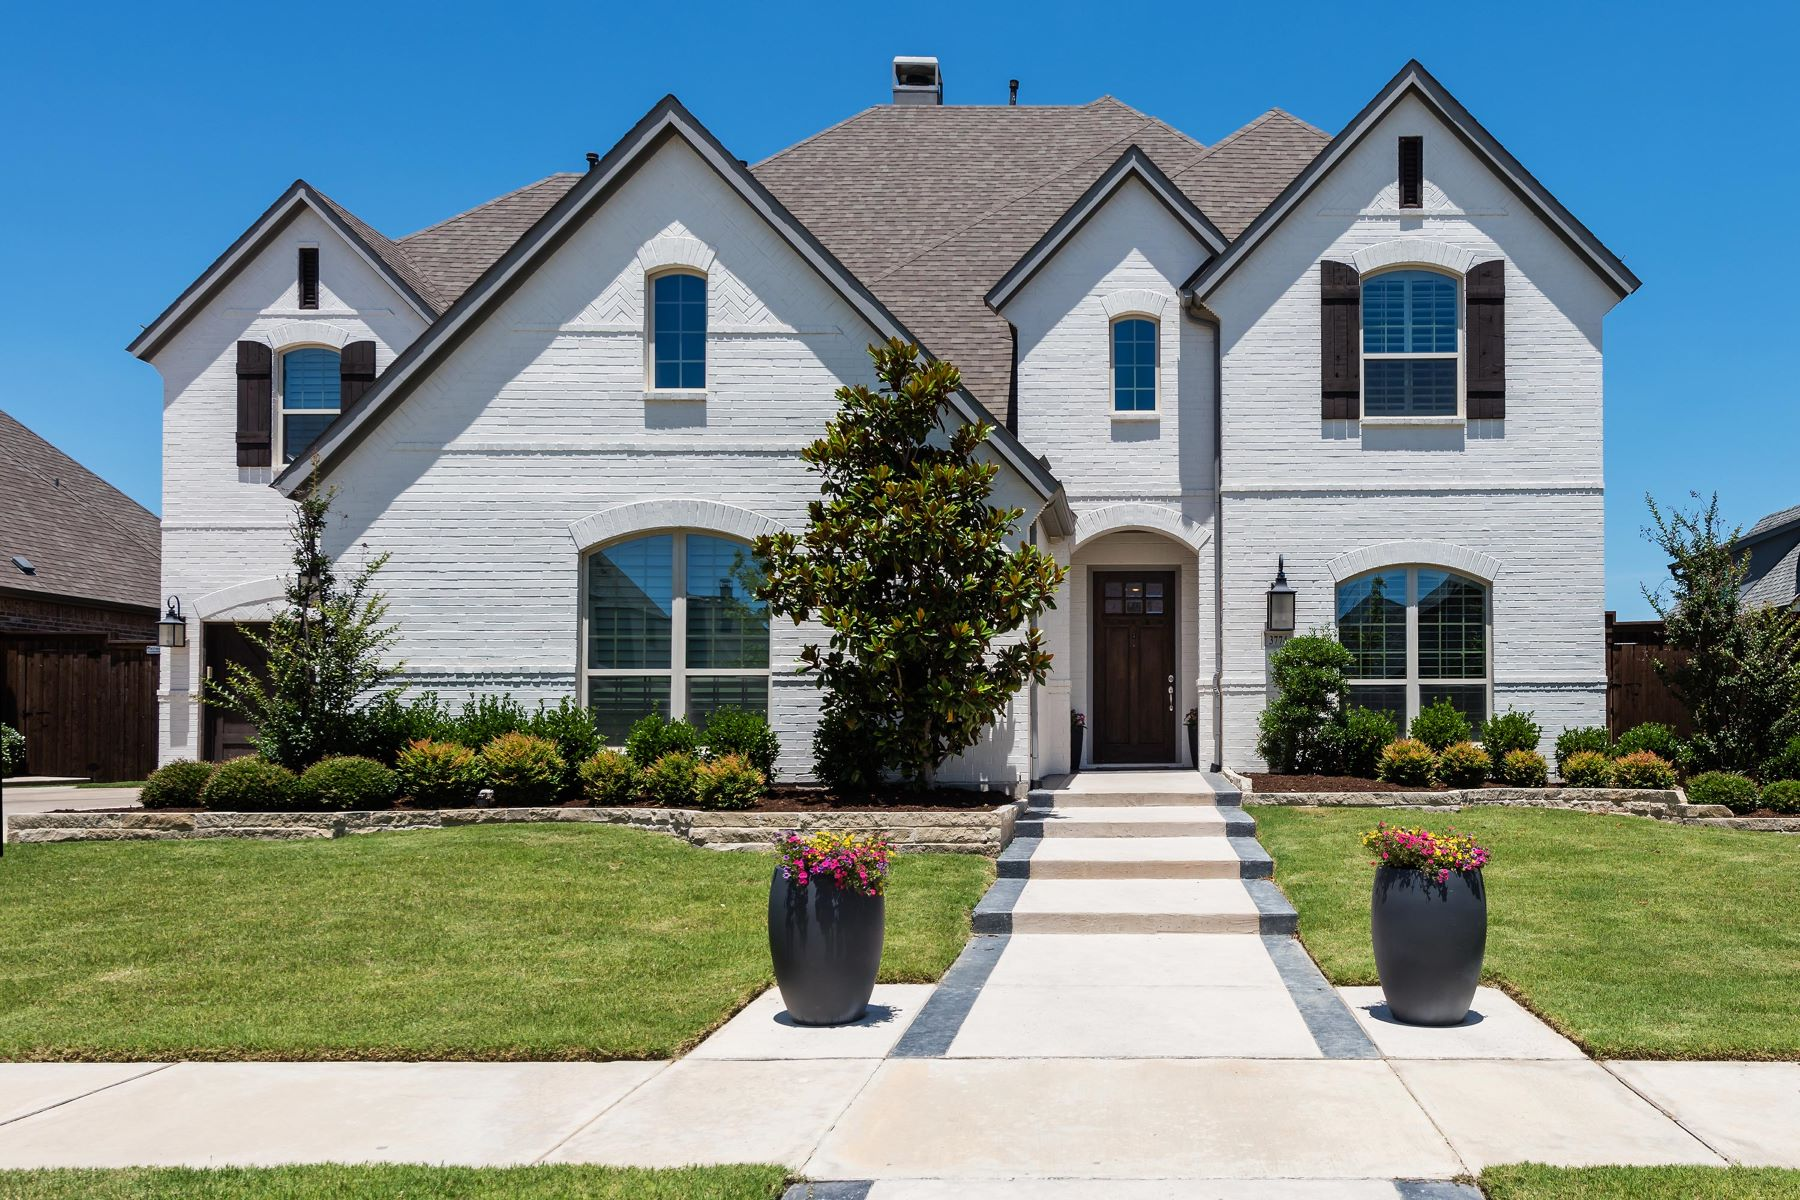 Single Family Homes for Sale at Stylish Park Place Estates Home 3774 Benchmark Lane Frisco, Texas 75034 United States